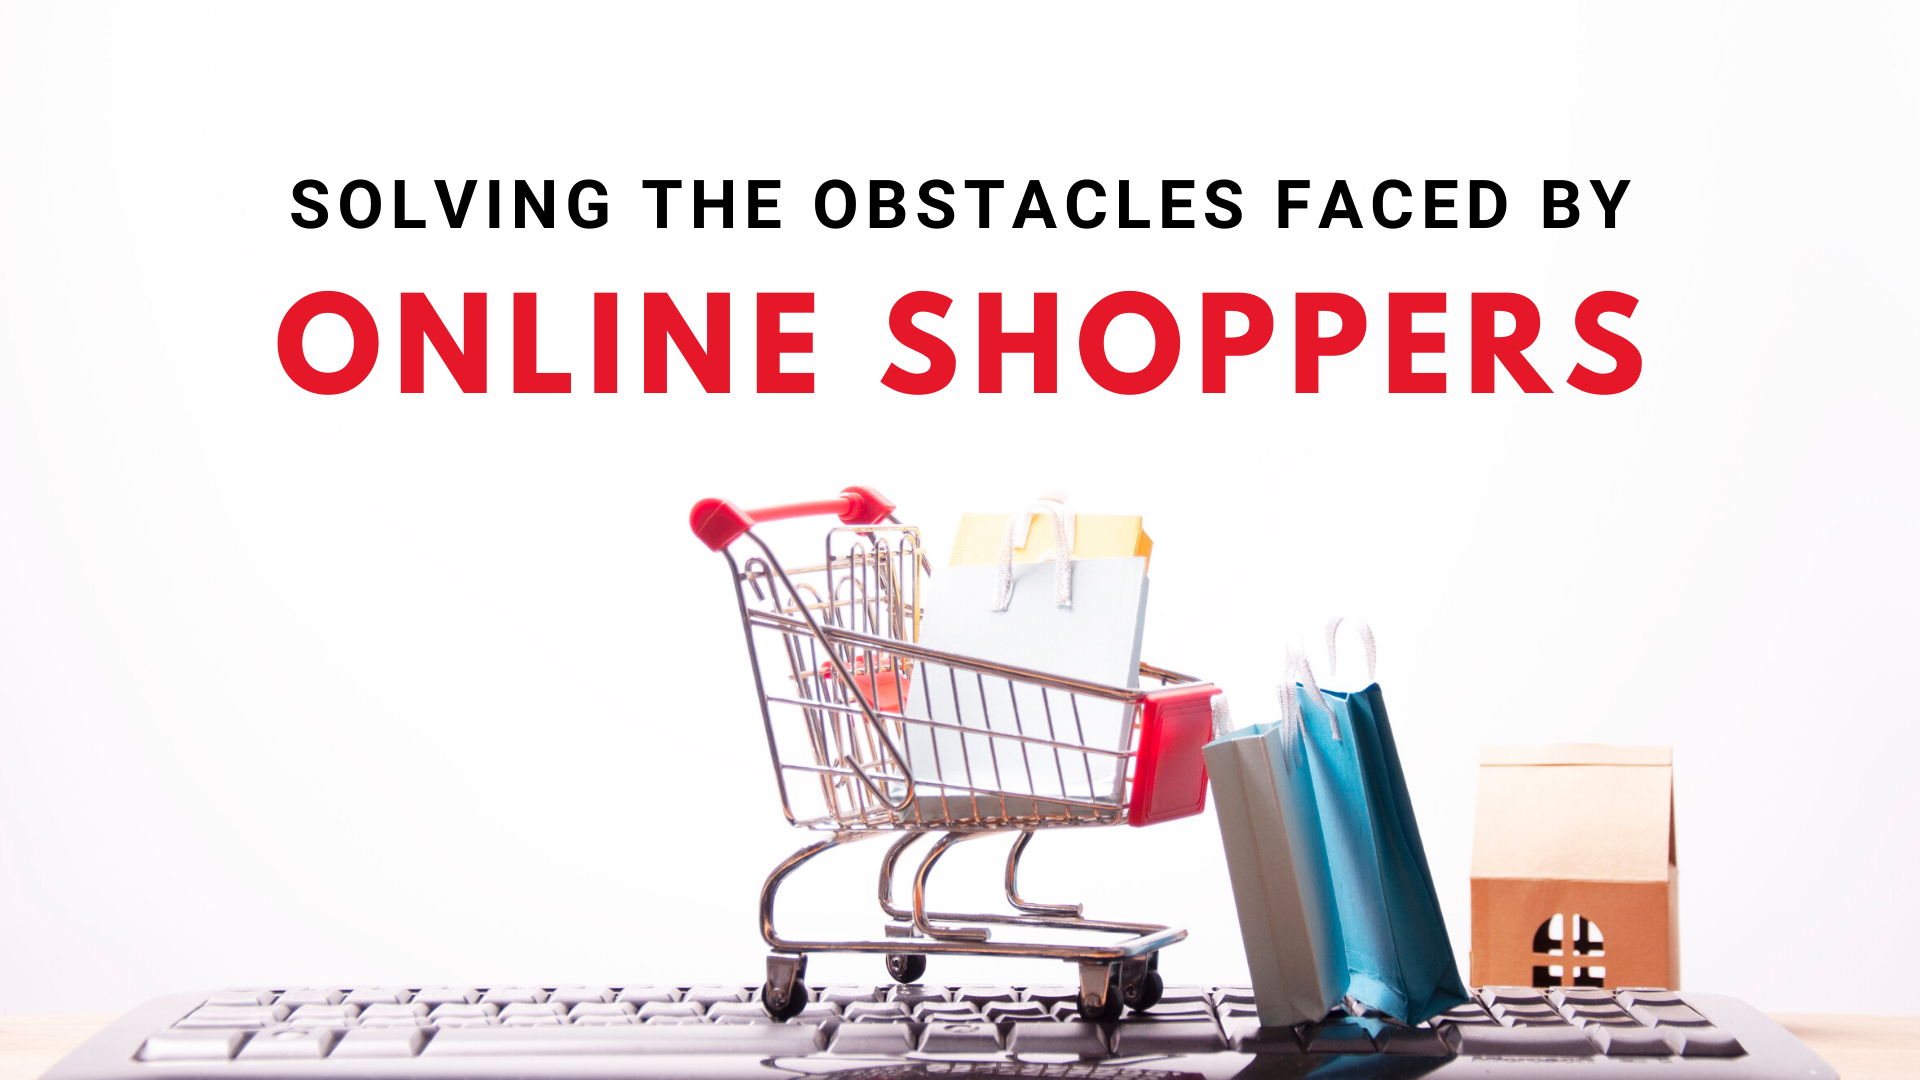 online shopping, ecommerce, solving problems, ecommerce problems, solving problems faced by online shoppers, common ecommerce issues, abandoned cart, online store strategy, online store customers, ecommerce customer tips, ecommerce customers, customer feedback